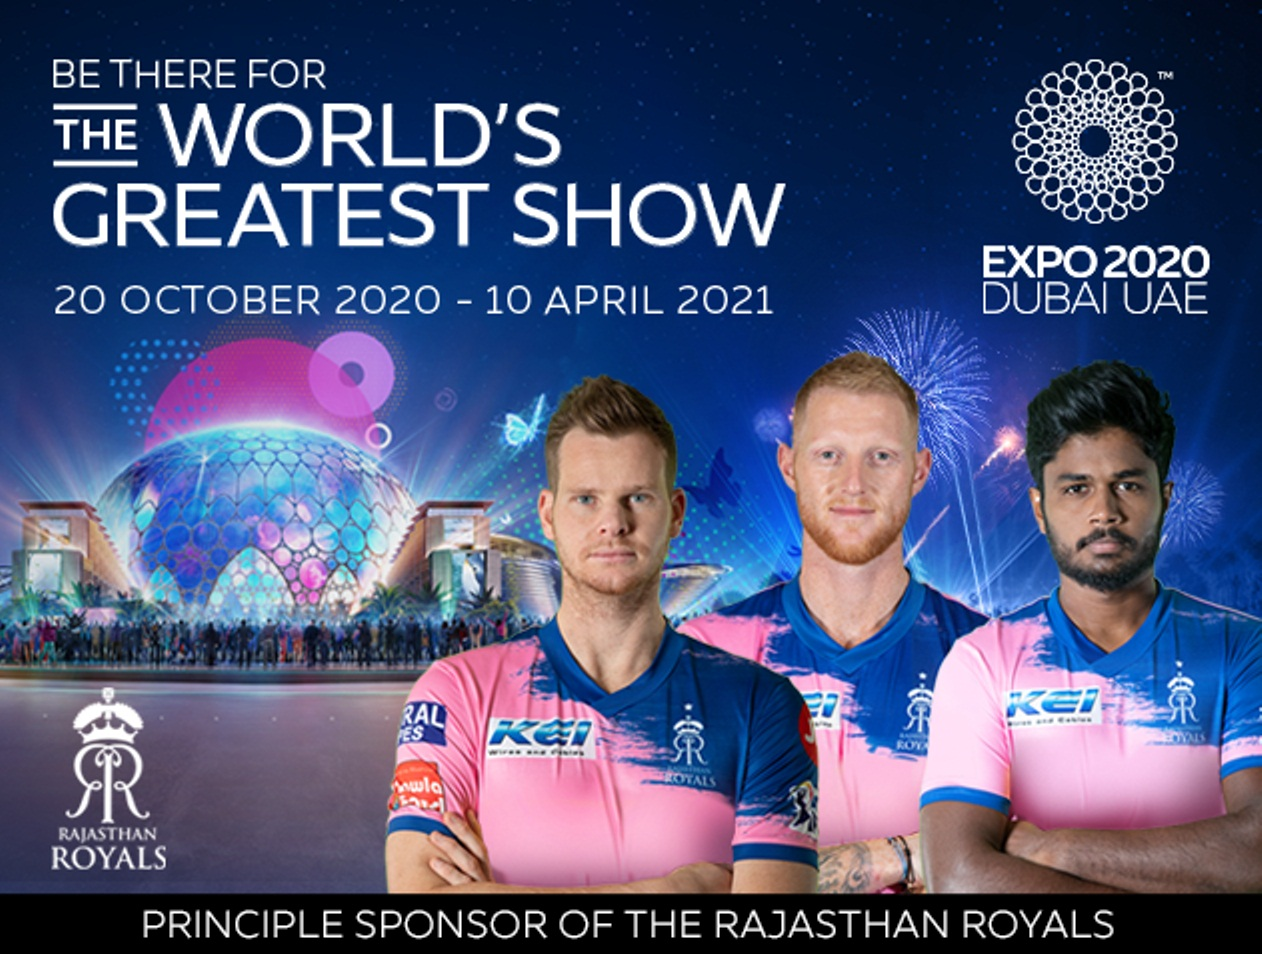 Expo 2020 Dubai will be Rajasthan Royals' principal sponsor for this year's IPL. Photo courtesy: www.rajasthanroyals.com